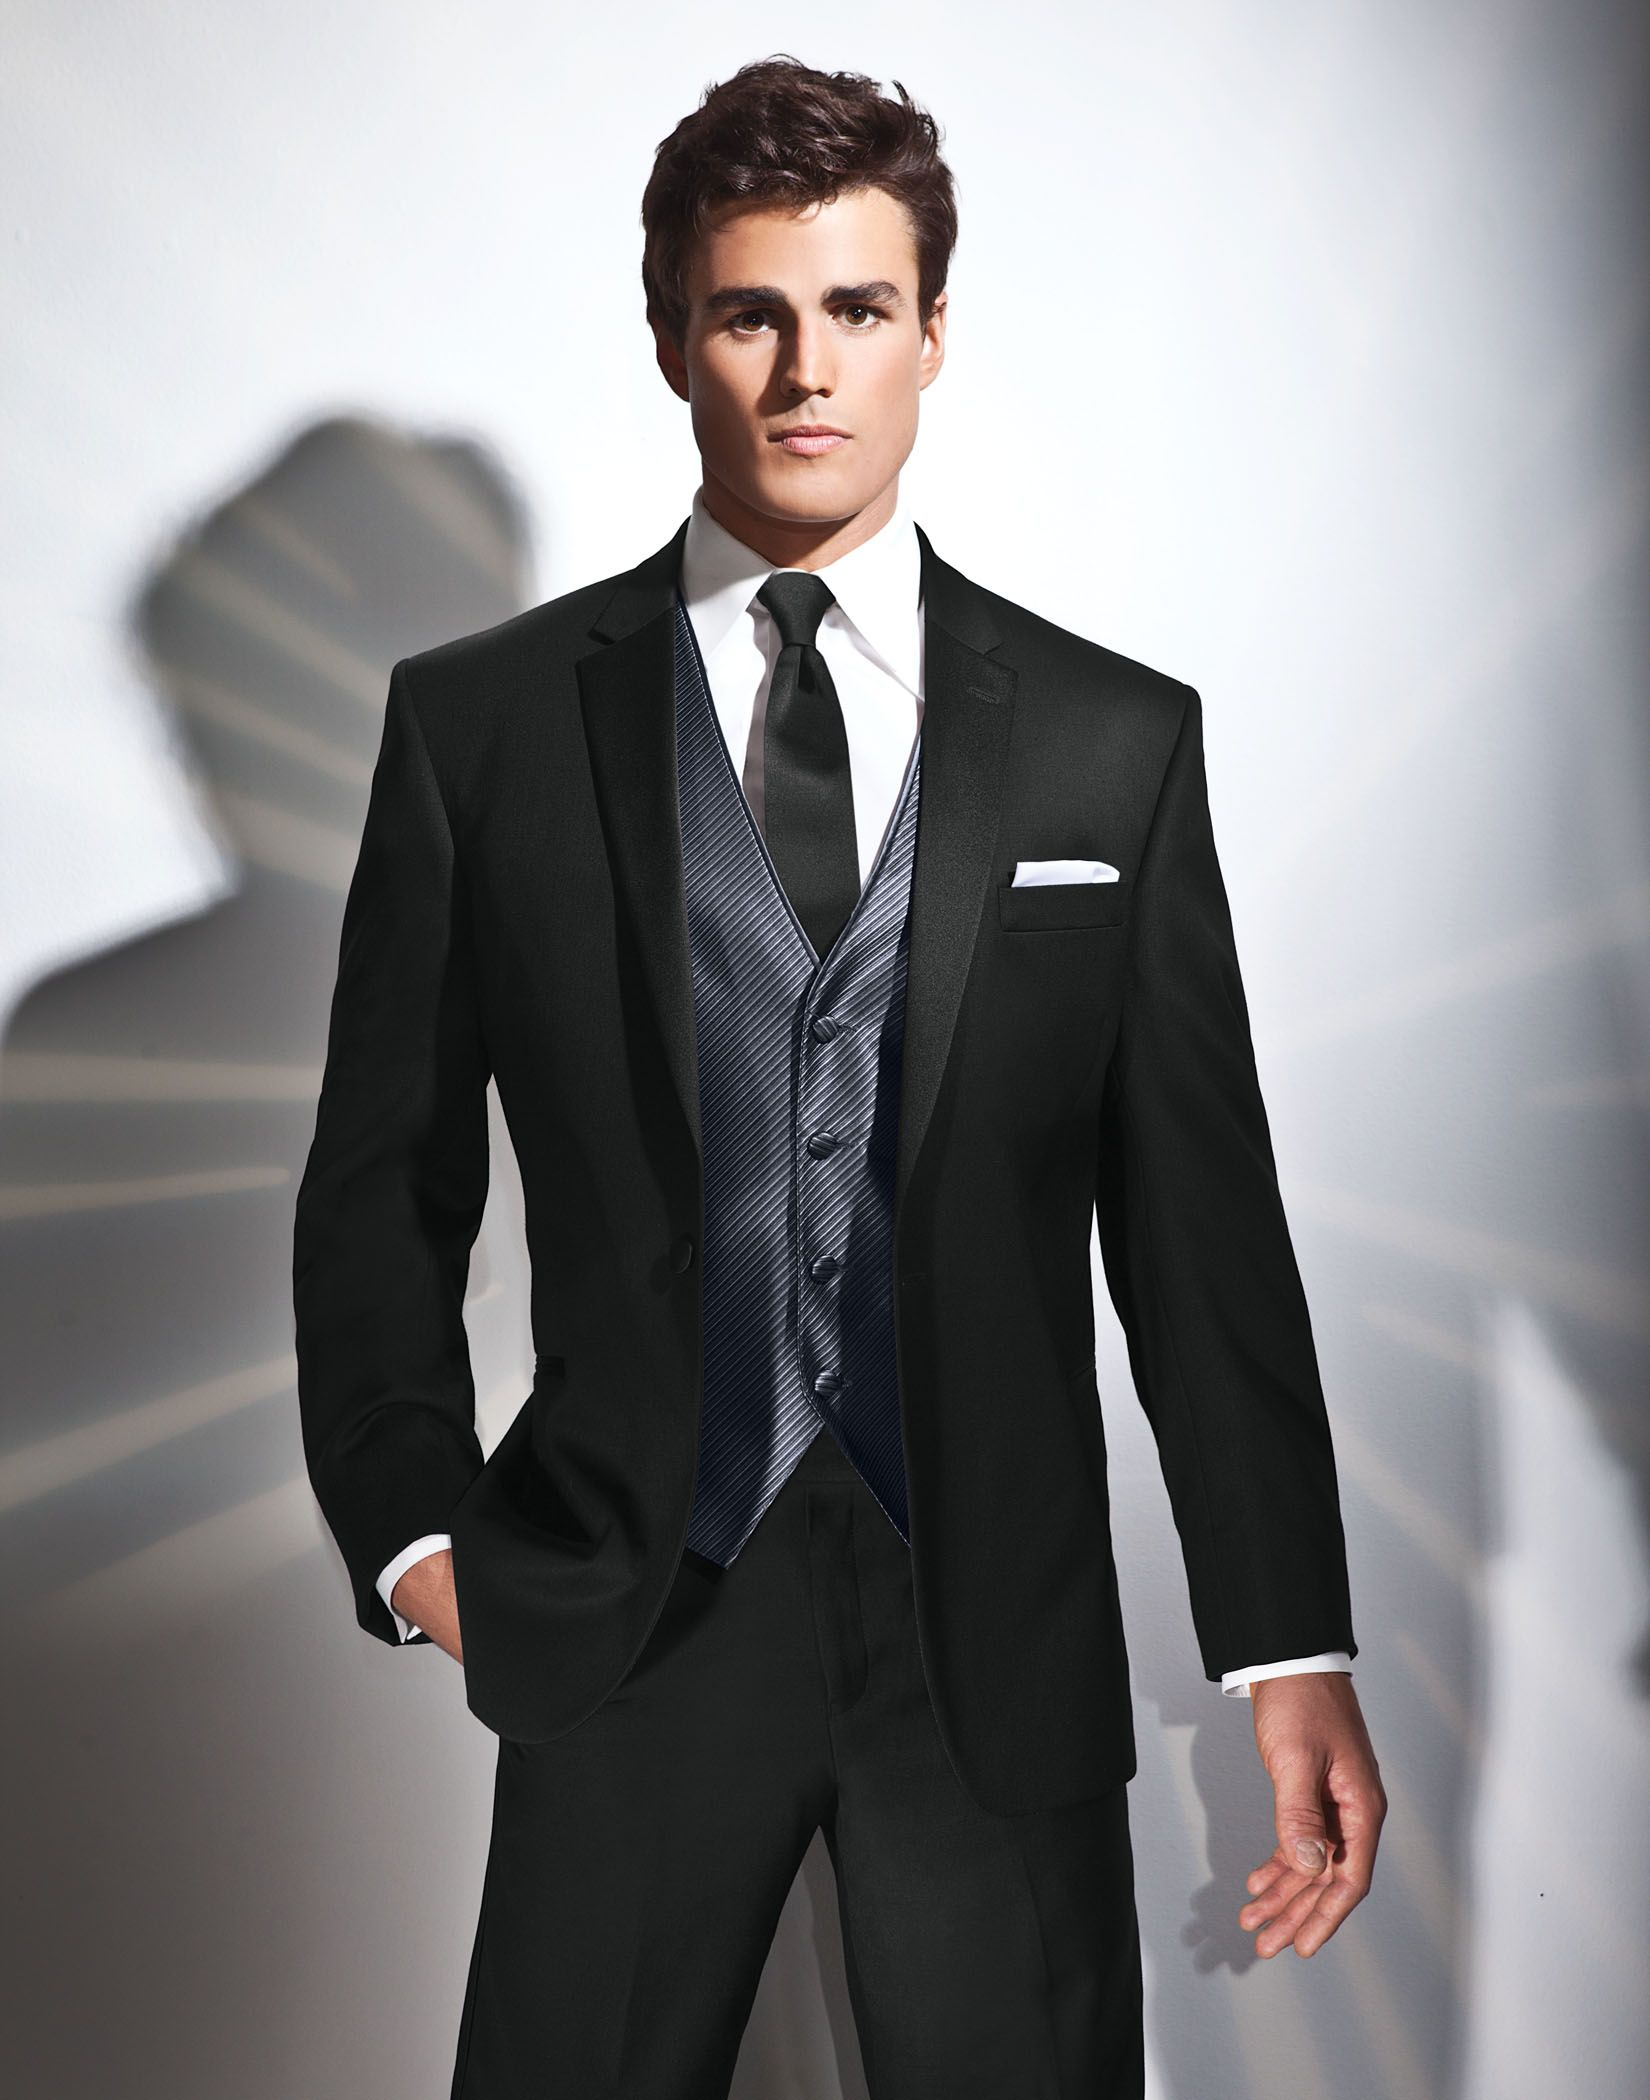 Absolutely Fitting | Orlando | Tuxedo | Wedding | Prom | Formal ...